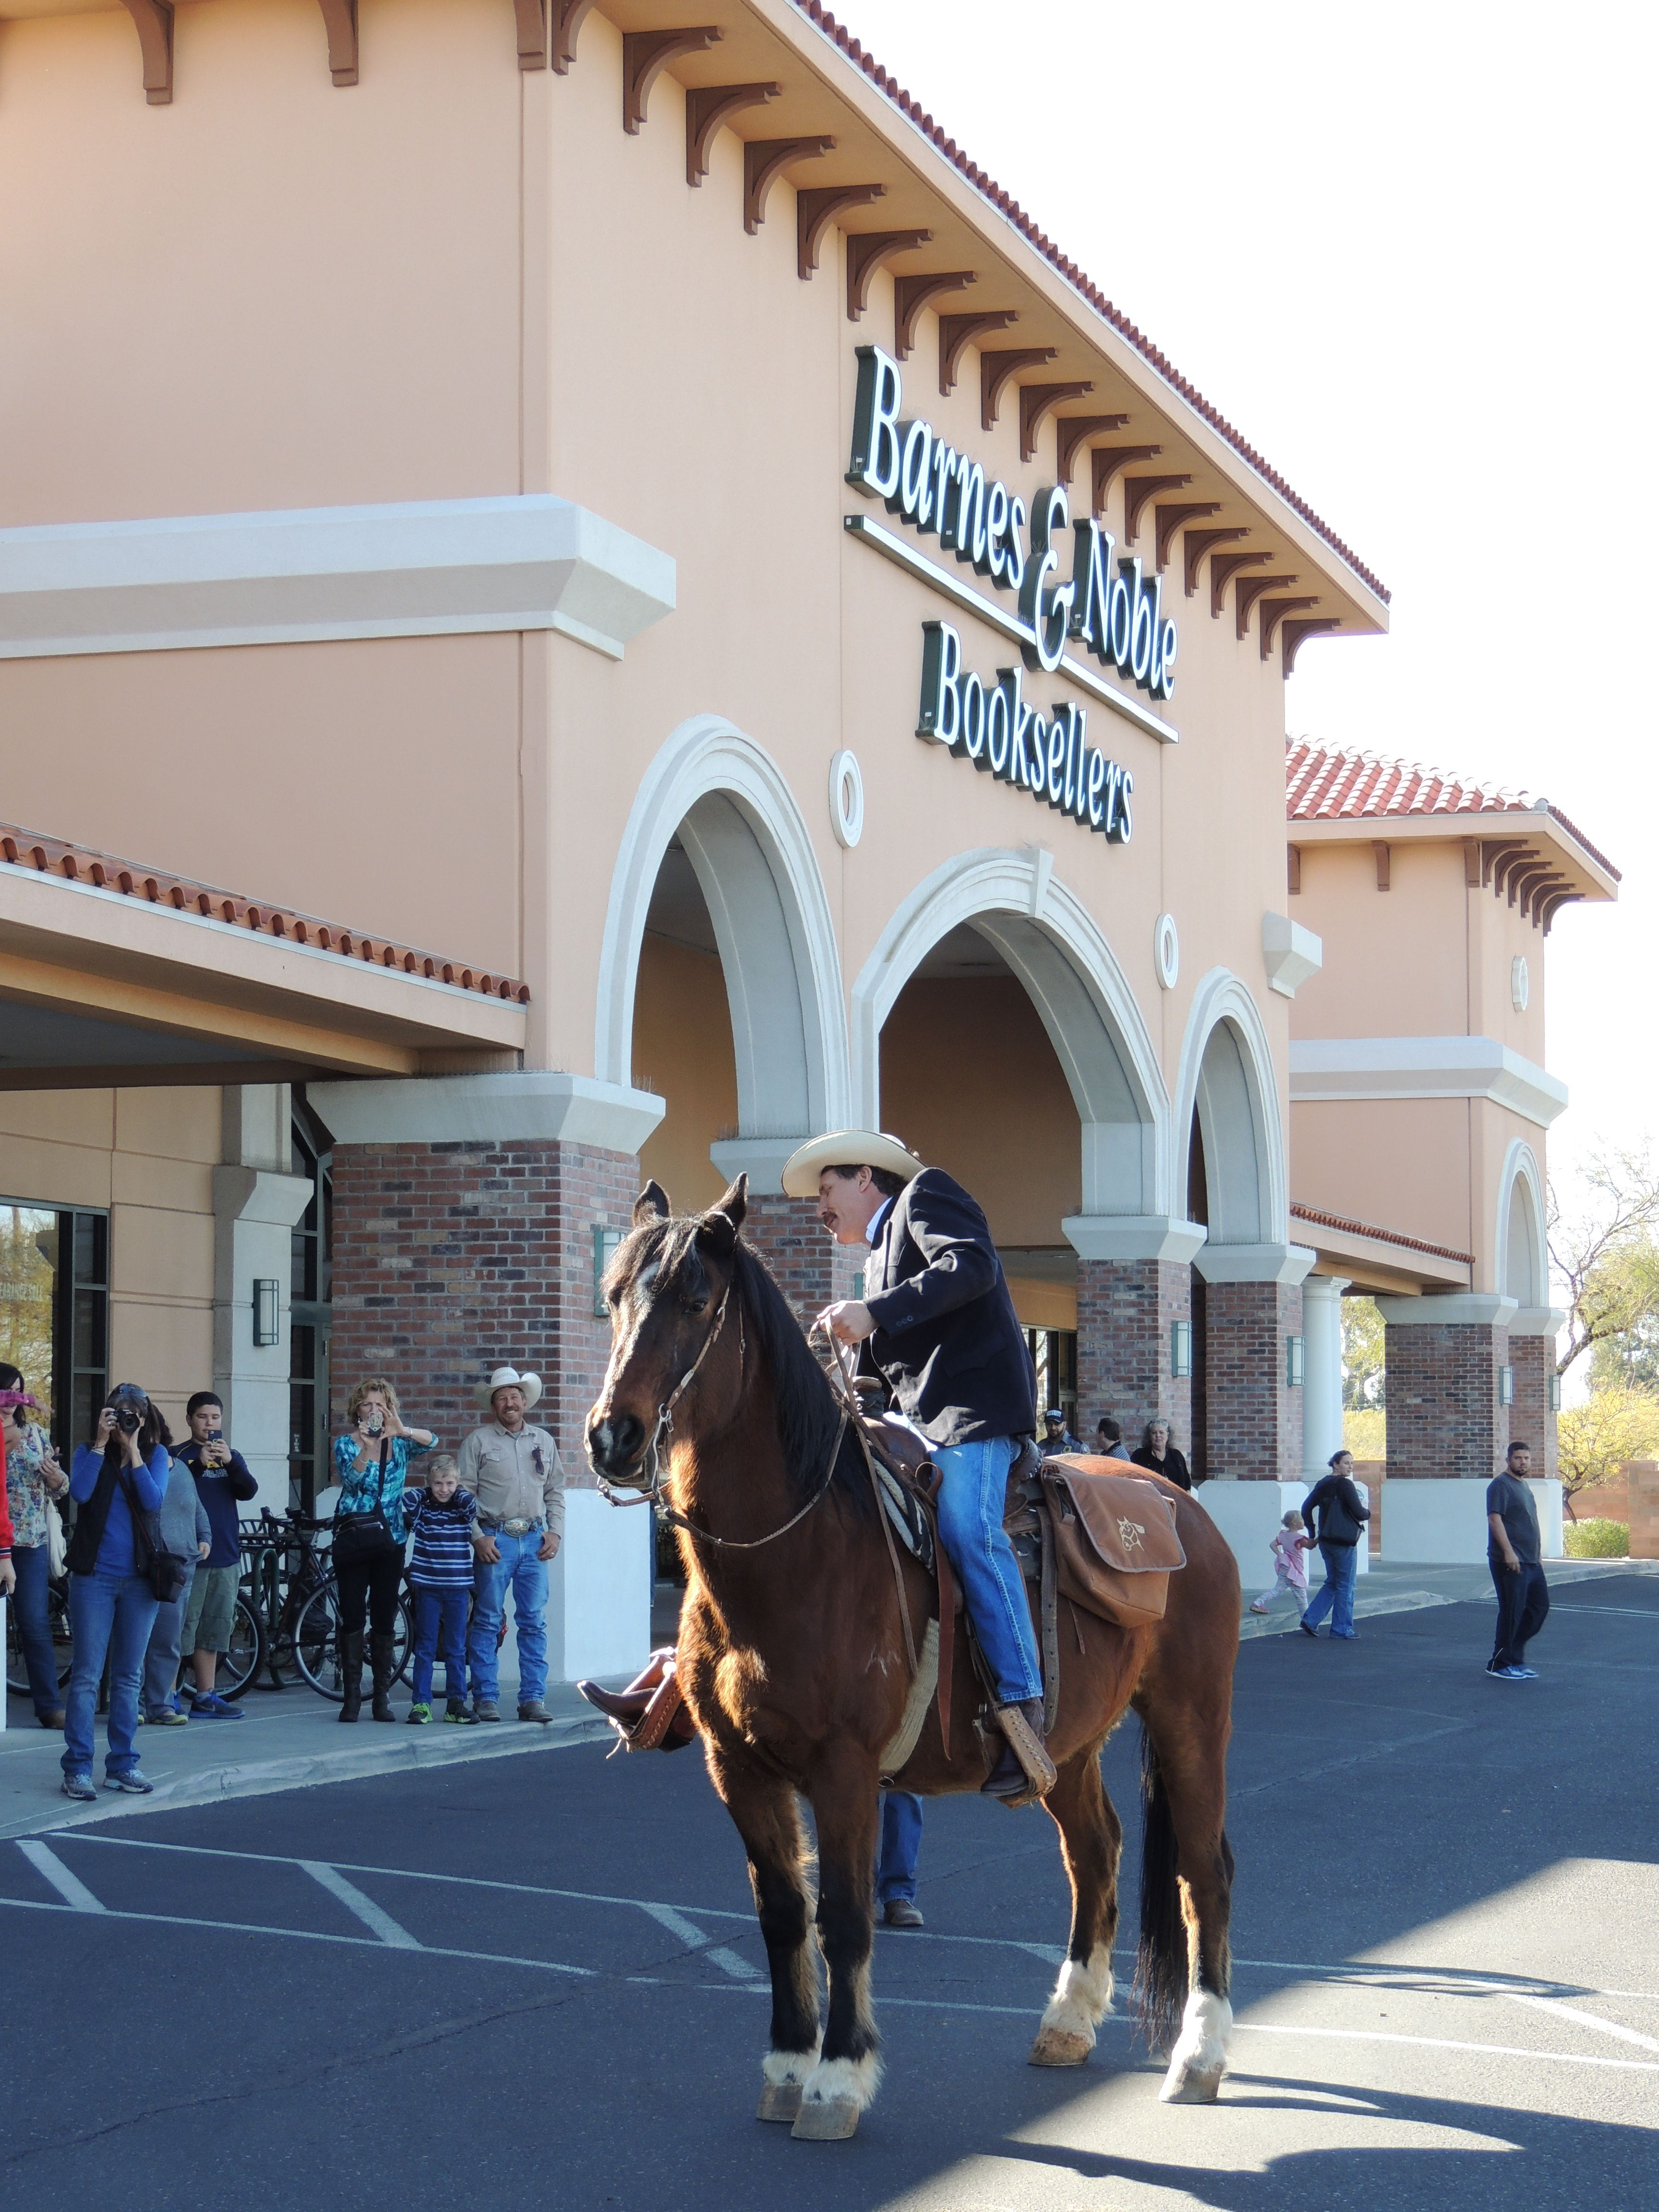 Carew Papritz, author of the inspirational book, The Legacy Letters, made history with the first ever e-book/book signing on horseback! The event took place on Saturday, January 18th, 2014 at Barnes & Noble Booksellers in Tucson, AZ. http://www.youtube.com/watch?v=aKEsxqmzs9g